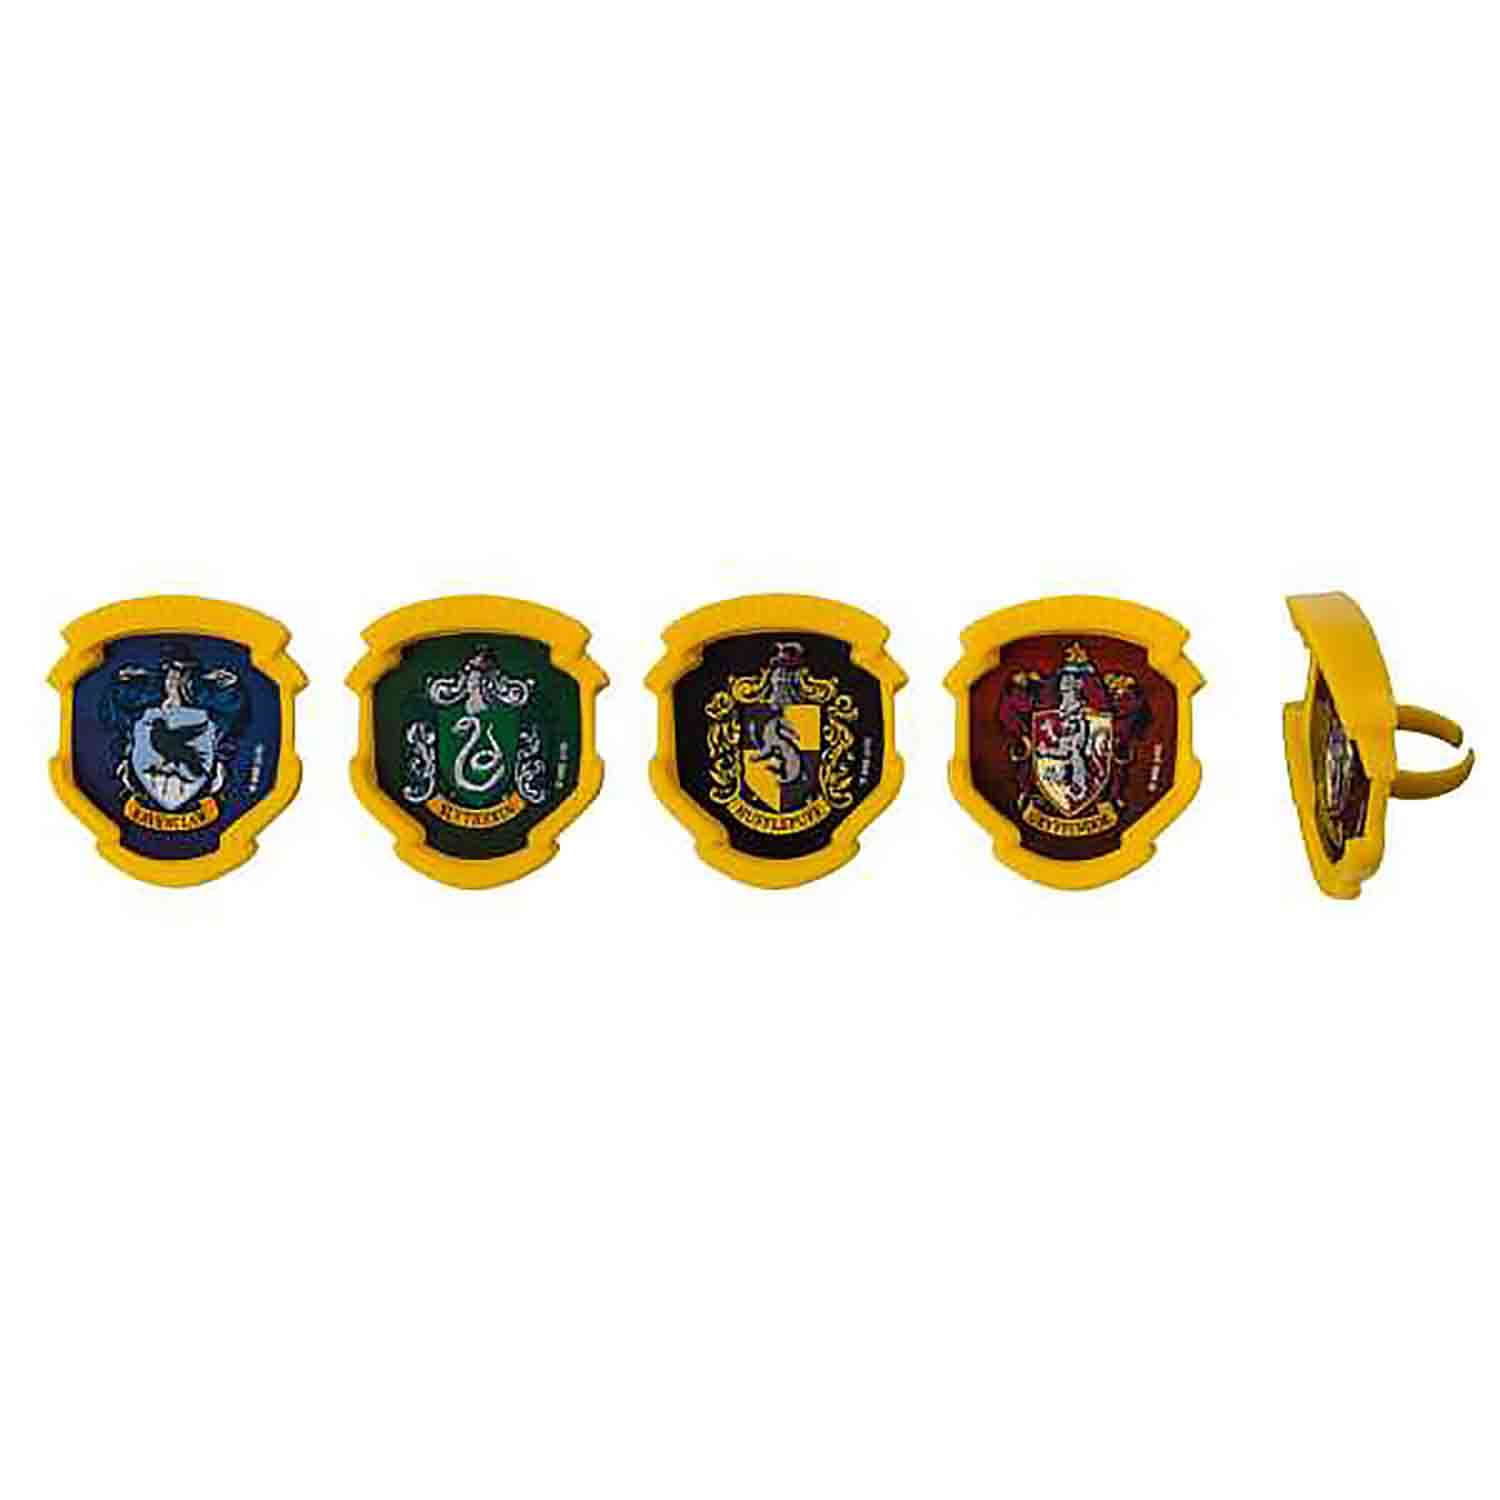 Hogwarts Houses Rings